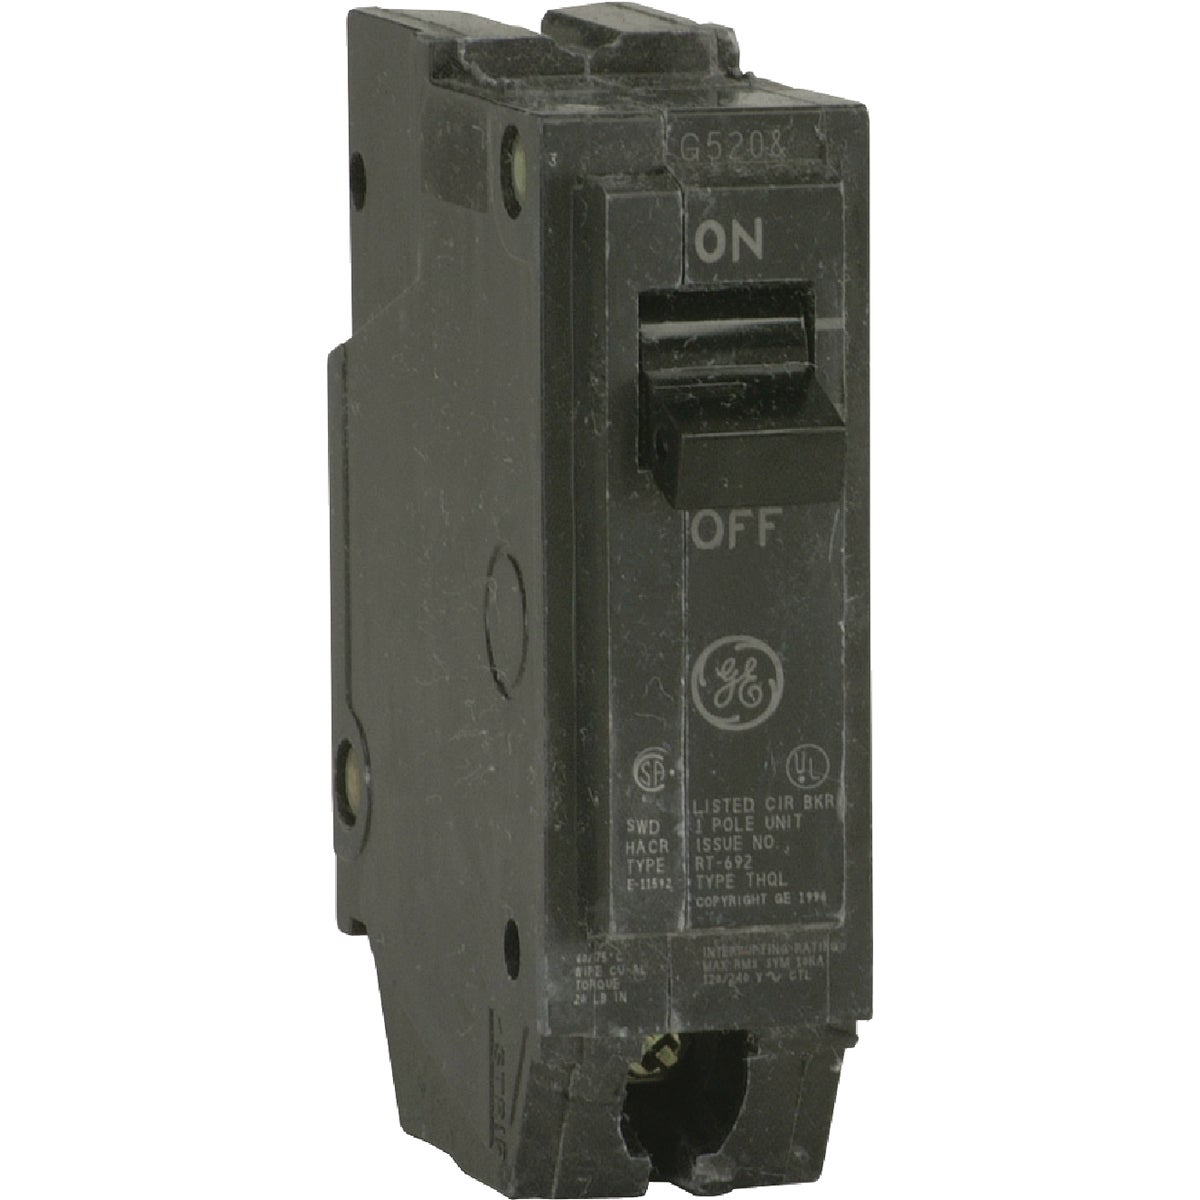 40A SP CIRCUIT BREAKER - THQL1140 by G E Industrial